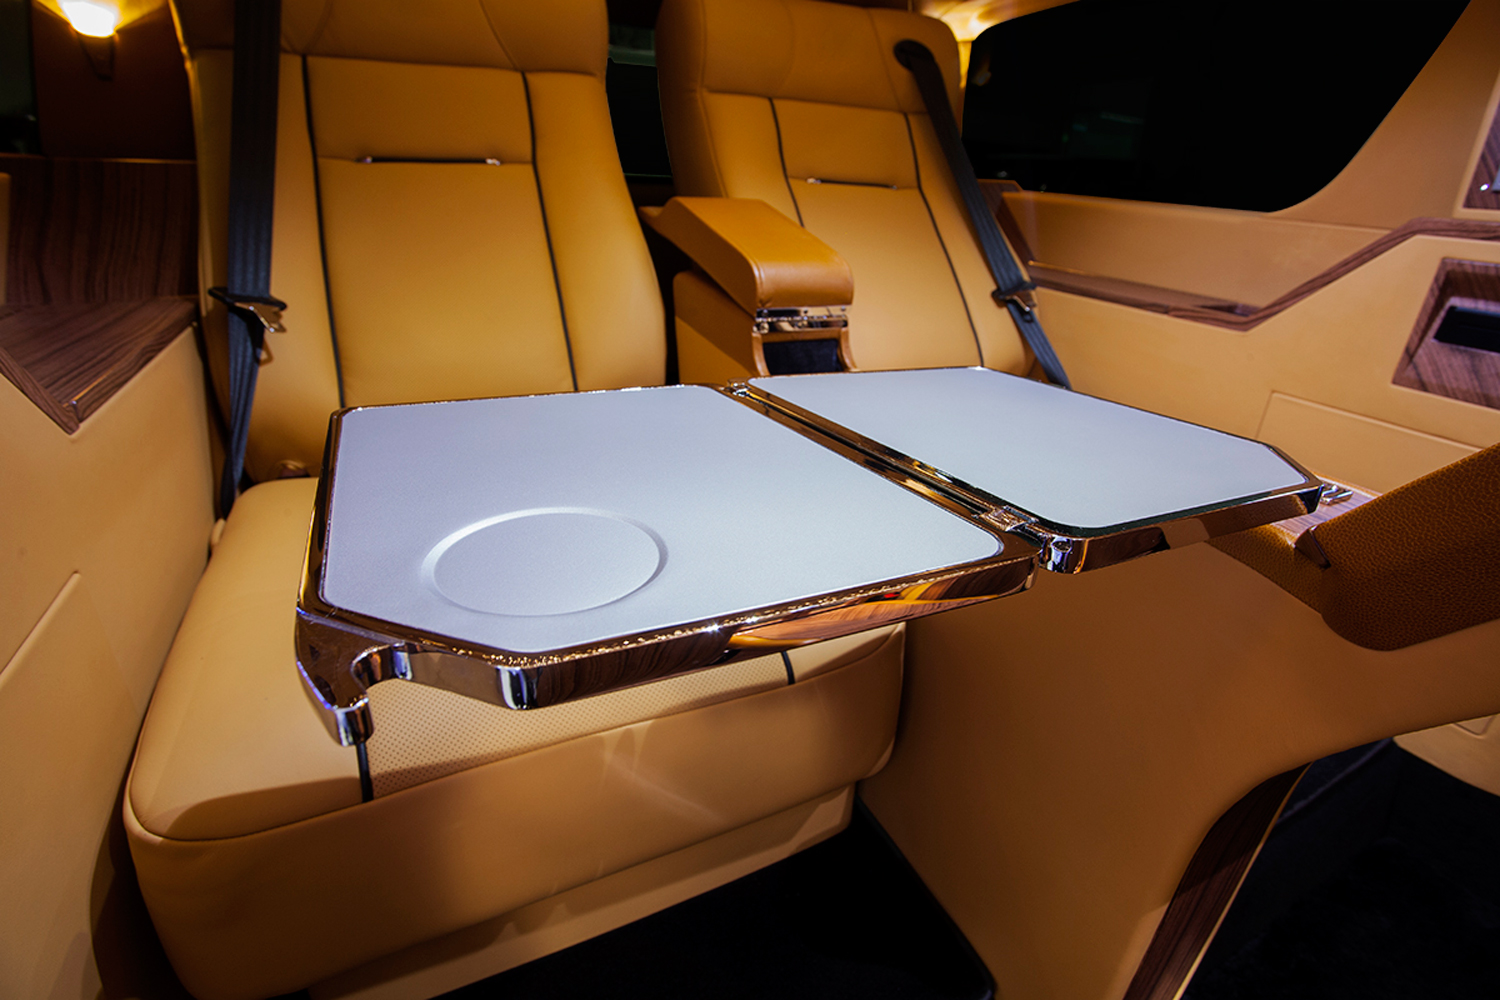 Lexani Pimps Out 2016 Cadillac Escalade Interior With Viceroy Edition